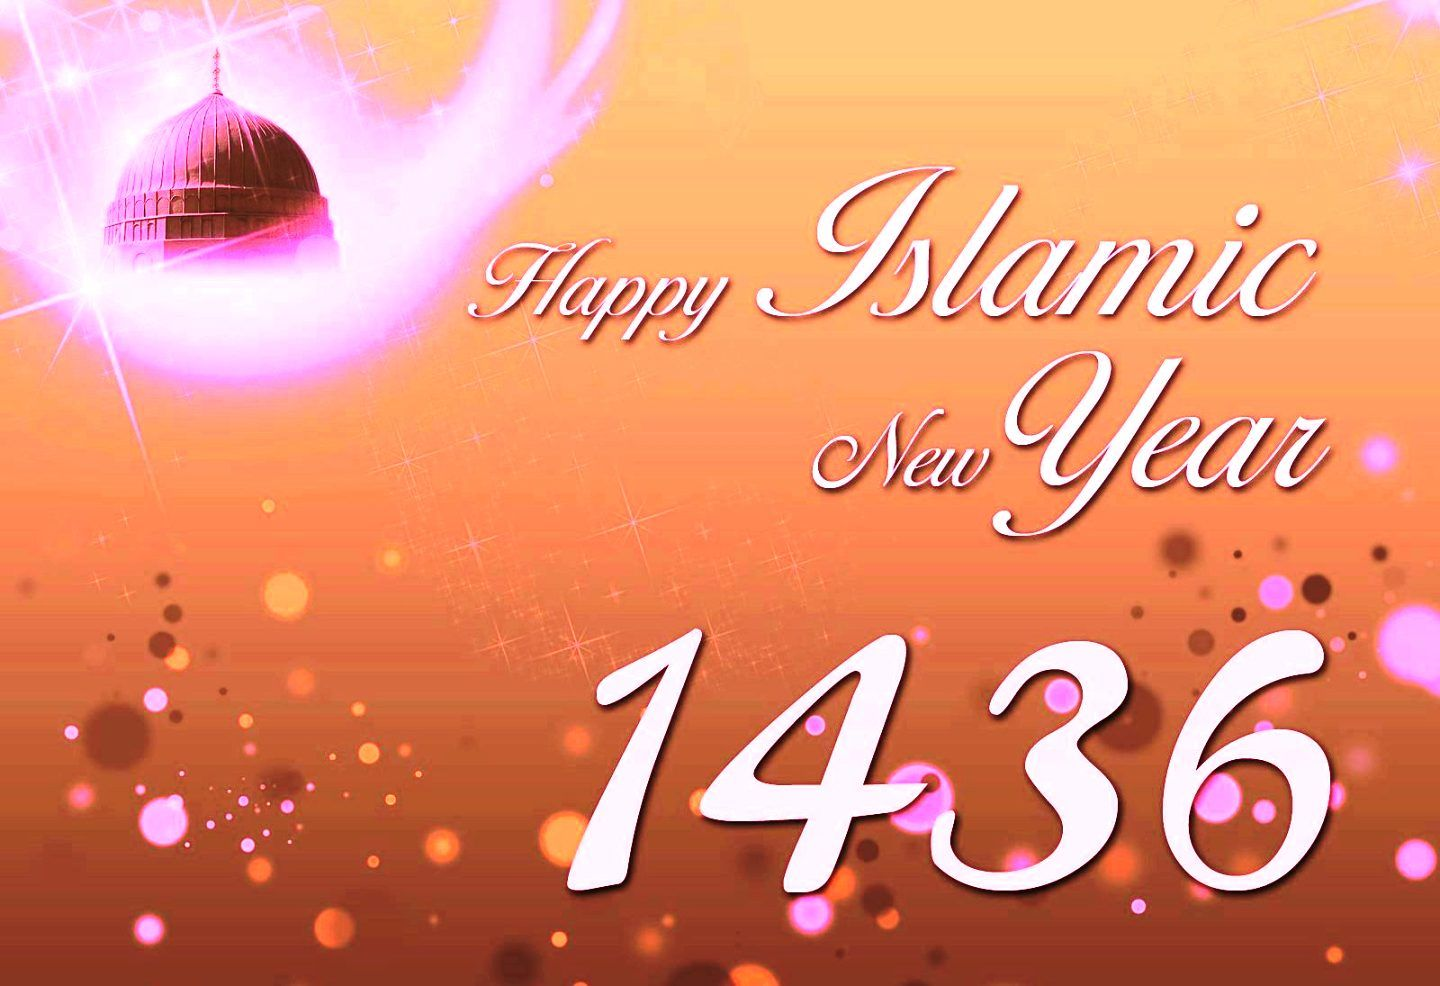 Happy new year 2015 sms greetings wishes new year pinterest happy new year 2015 sms greetings wishes kristyandbryce Gallery